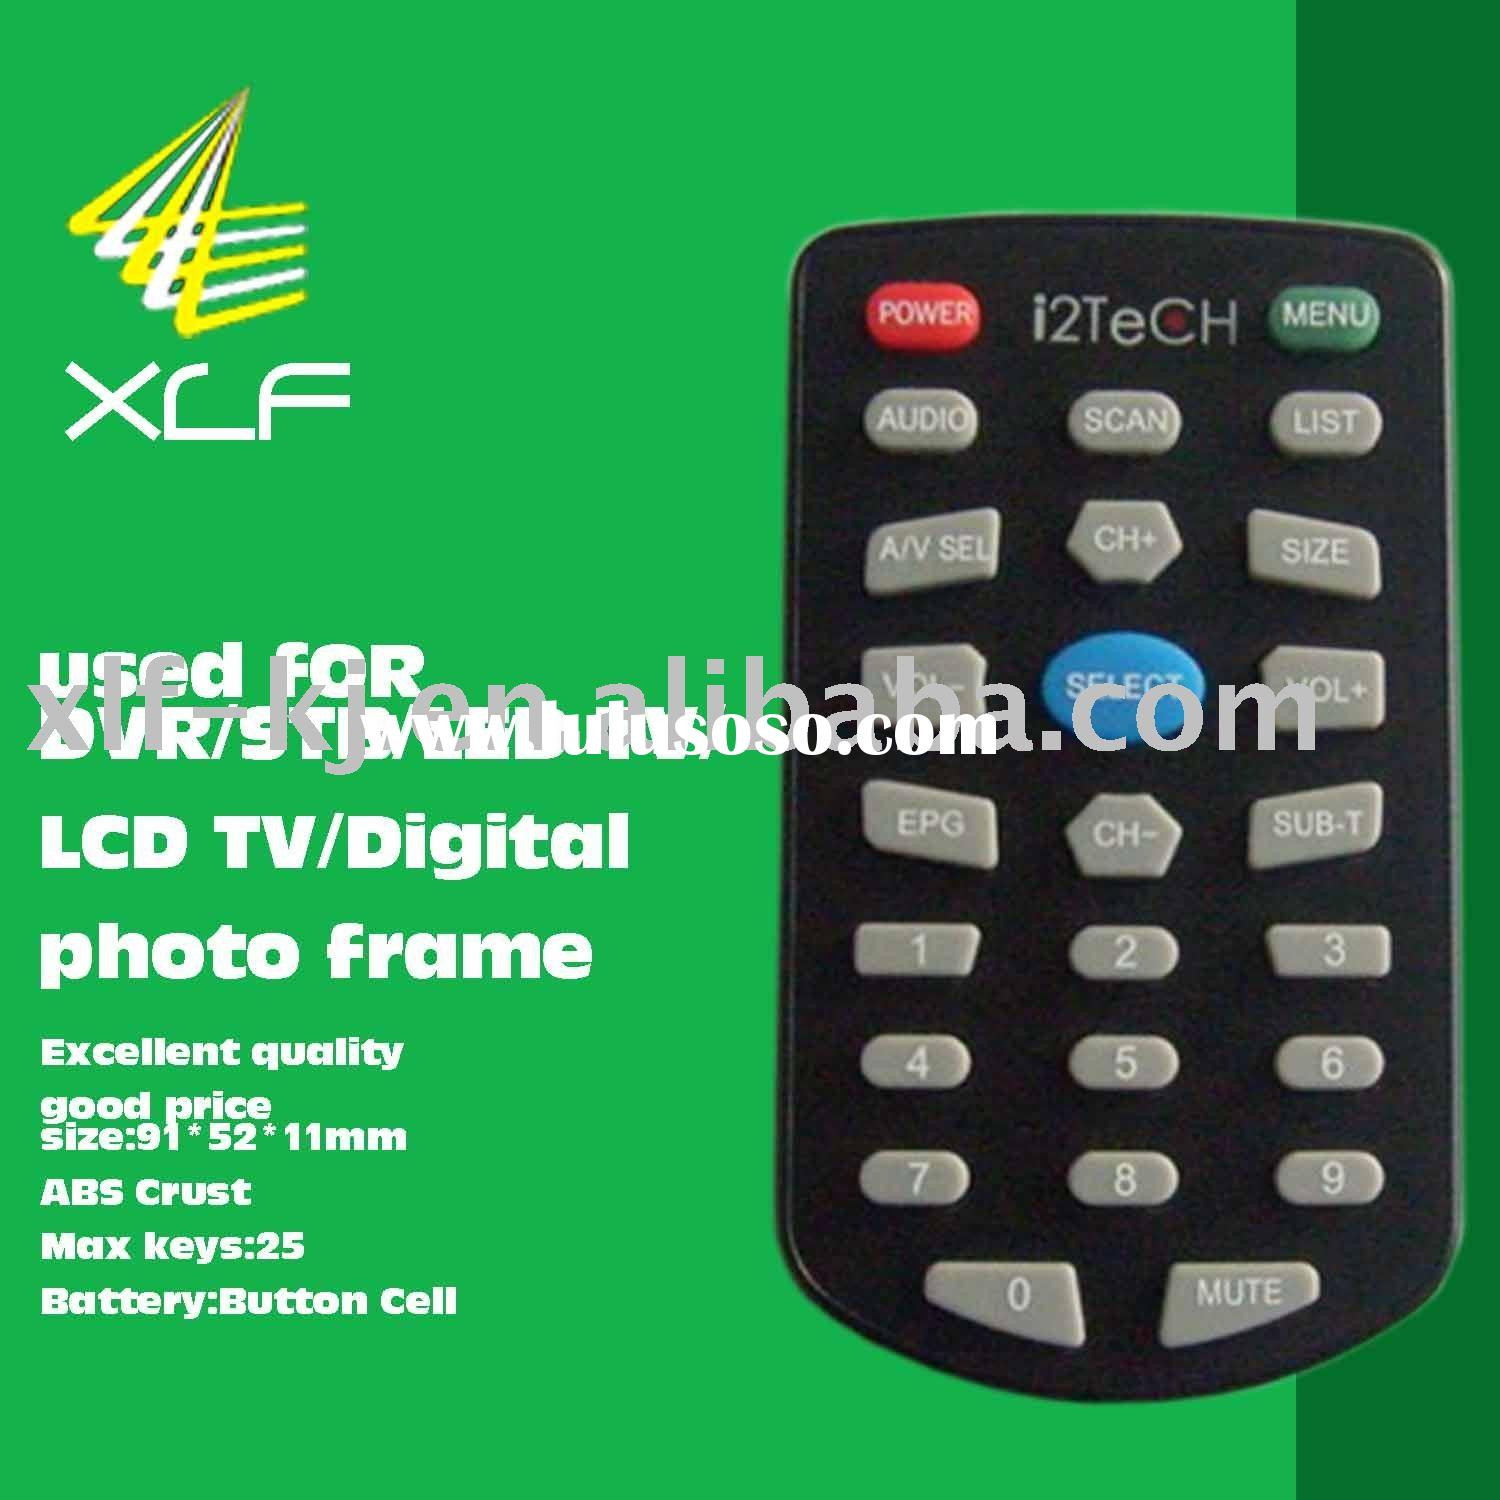 XLF-025A photo frame,DVR,STB,LED/LCD TV Digital Video Recorder Remote Control